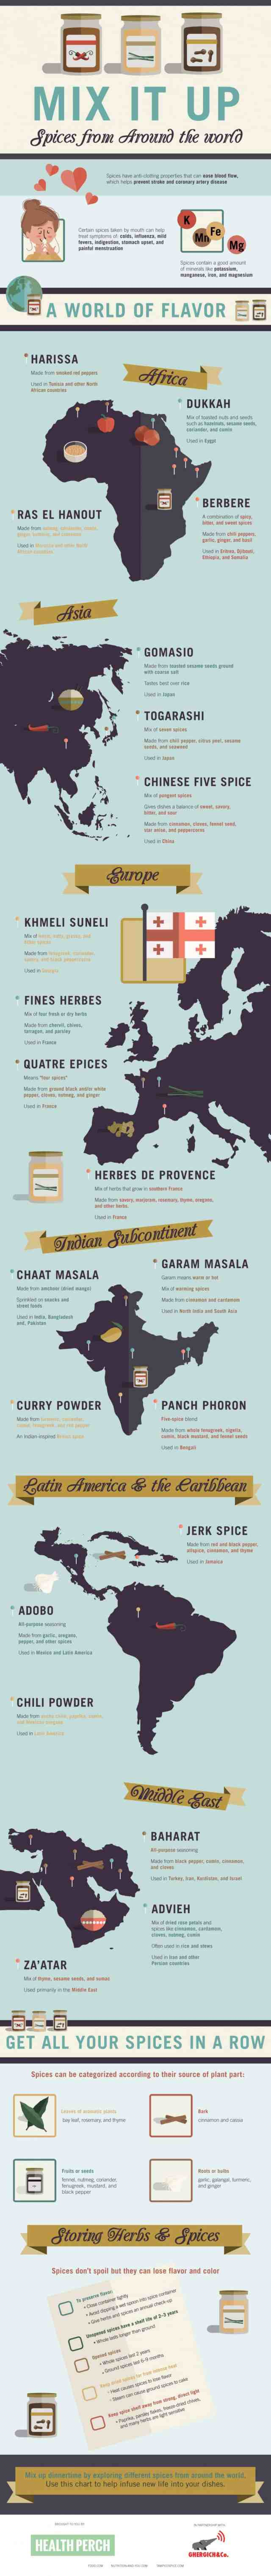 Mix It Up: Spices From Around the World Infographic